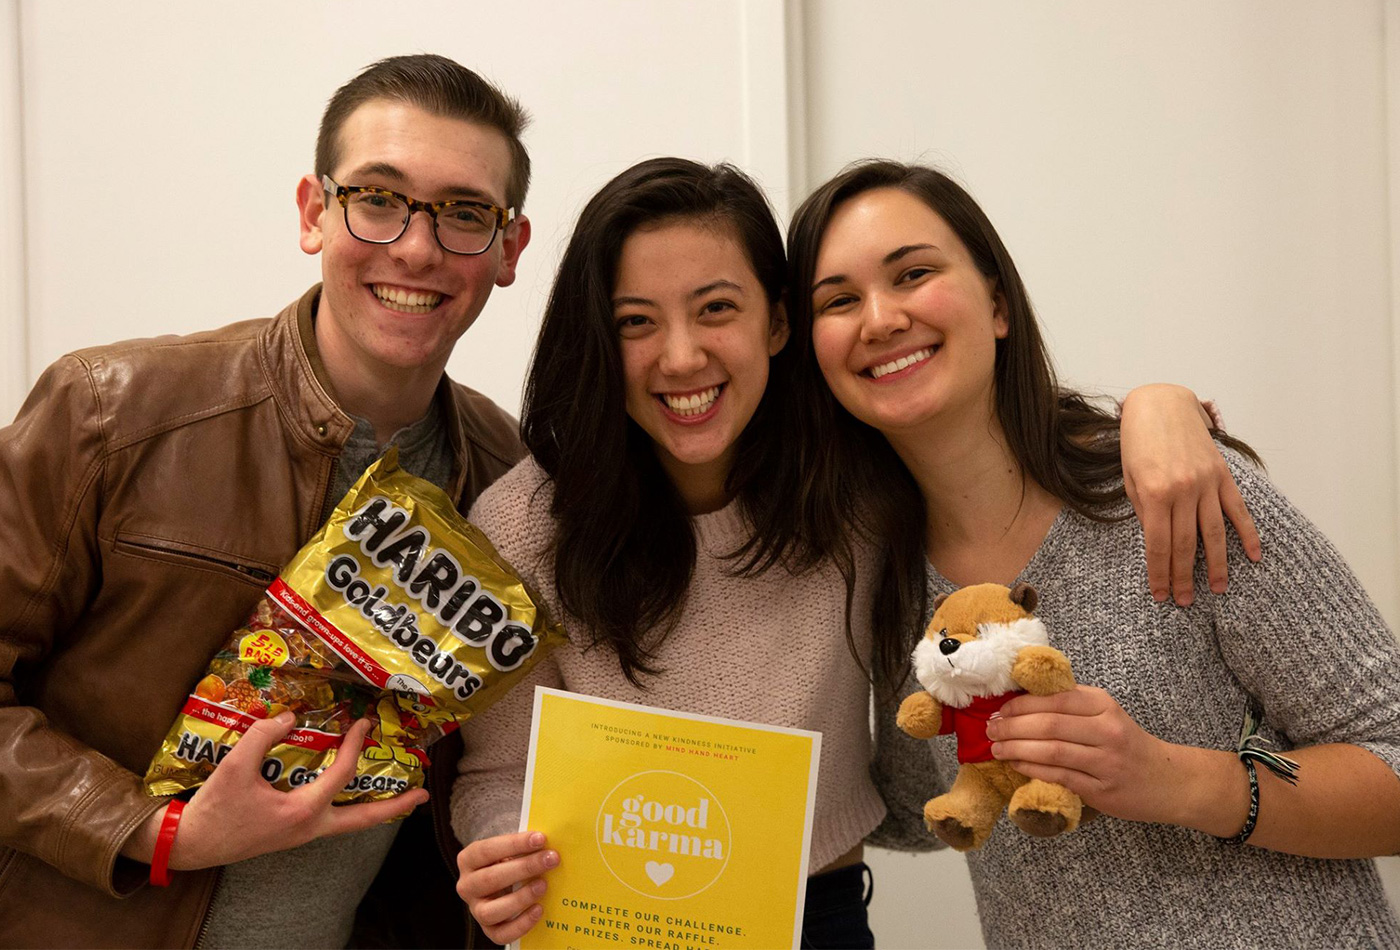 Three students smile together holding stuffed animals and gummy bears.